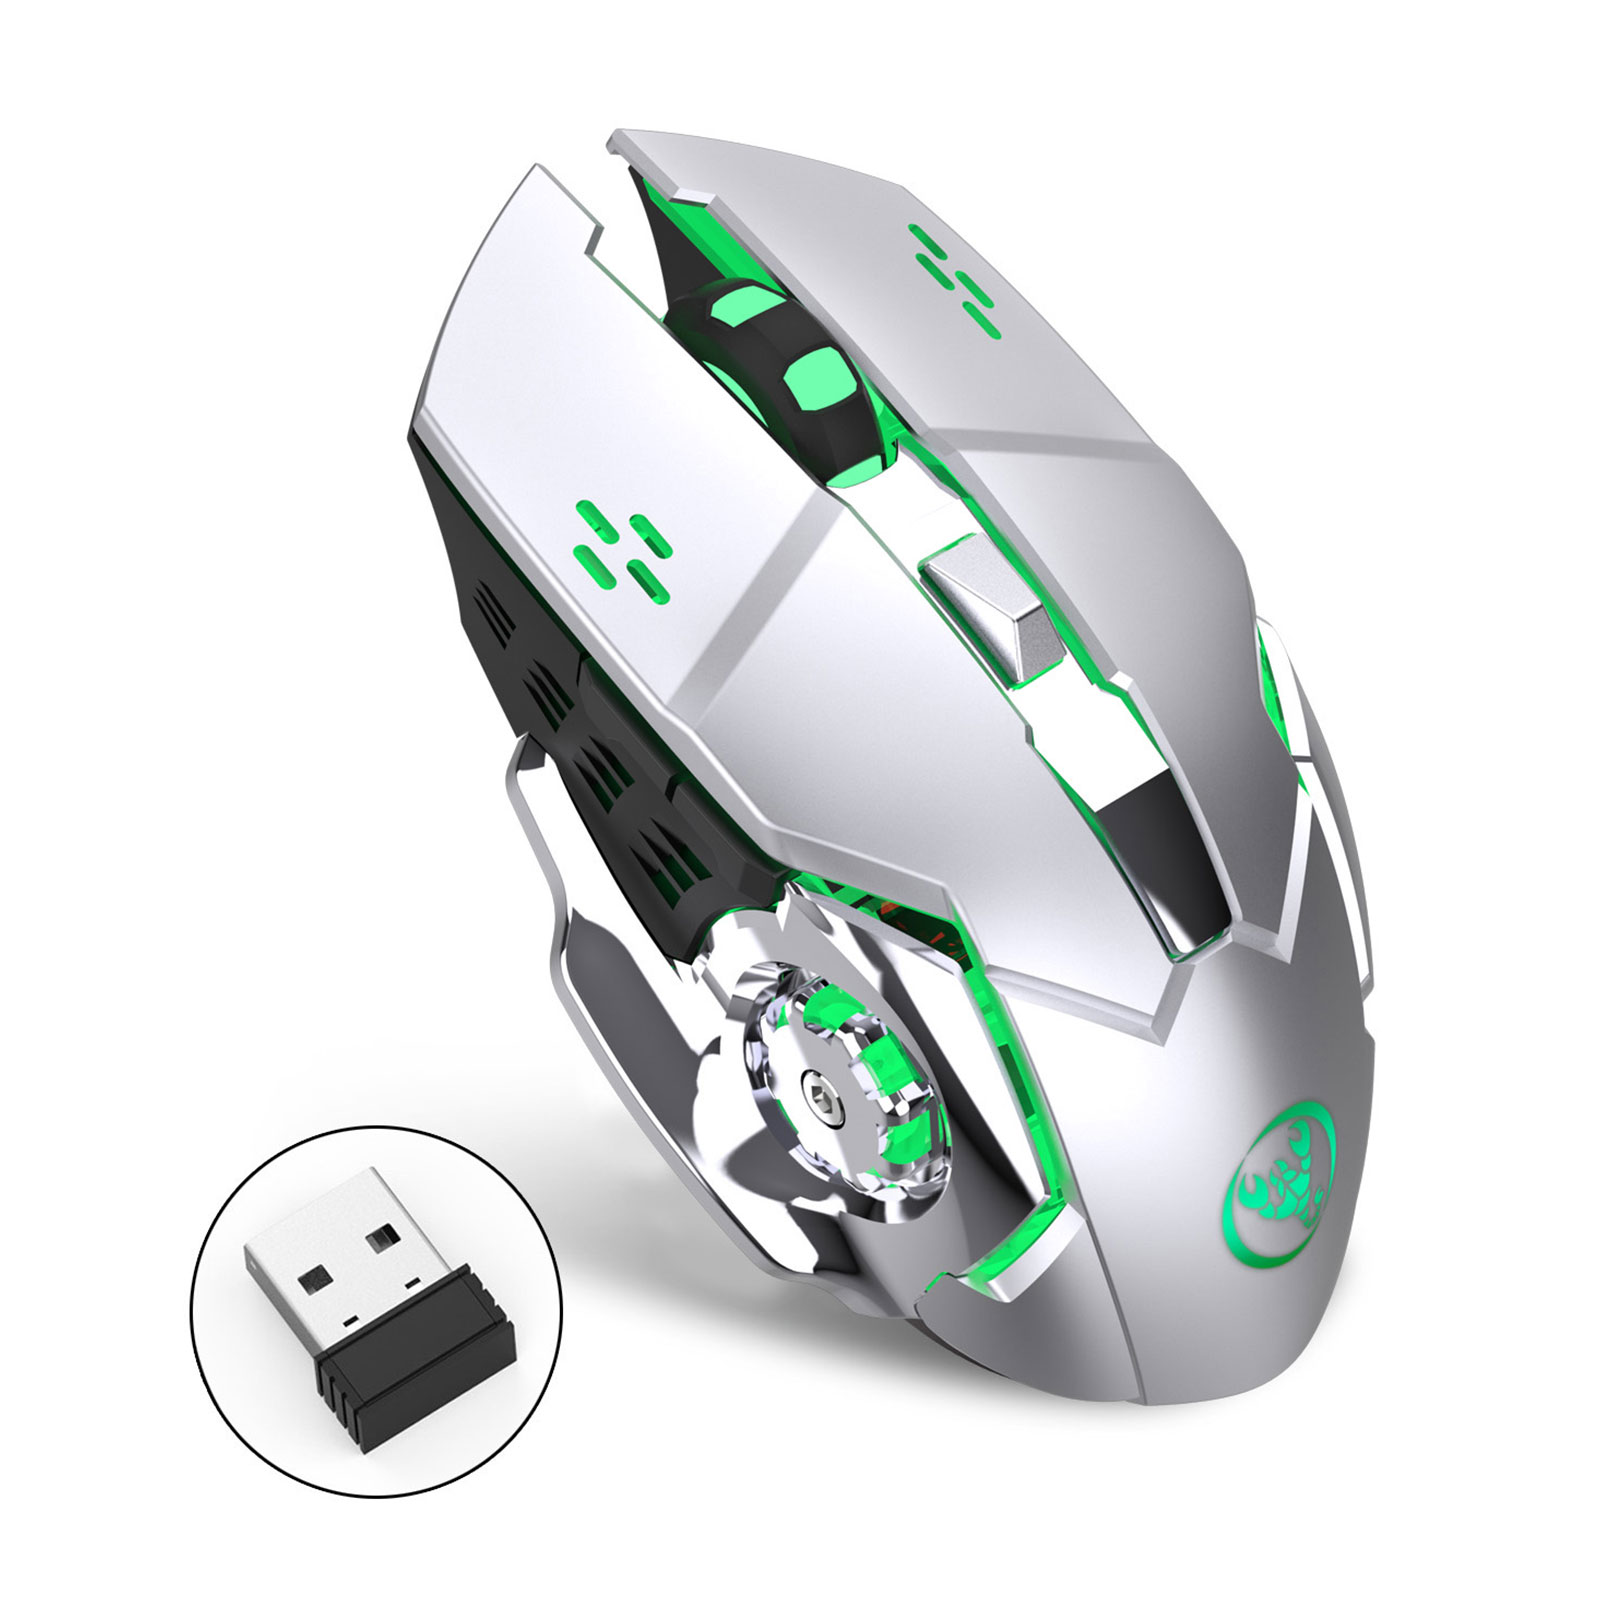 EEEKit Wireless Optical Gaming Mouse, 7 Color Changing Wireless Laptop Mouse With USB Receiver, Rechargeable Game Mice with 4 Adjustable CPI Levels for PC, Laptop, Computer, Gaming Players